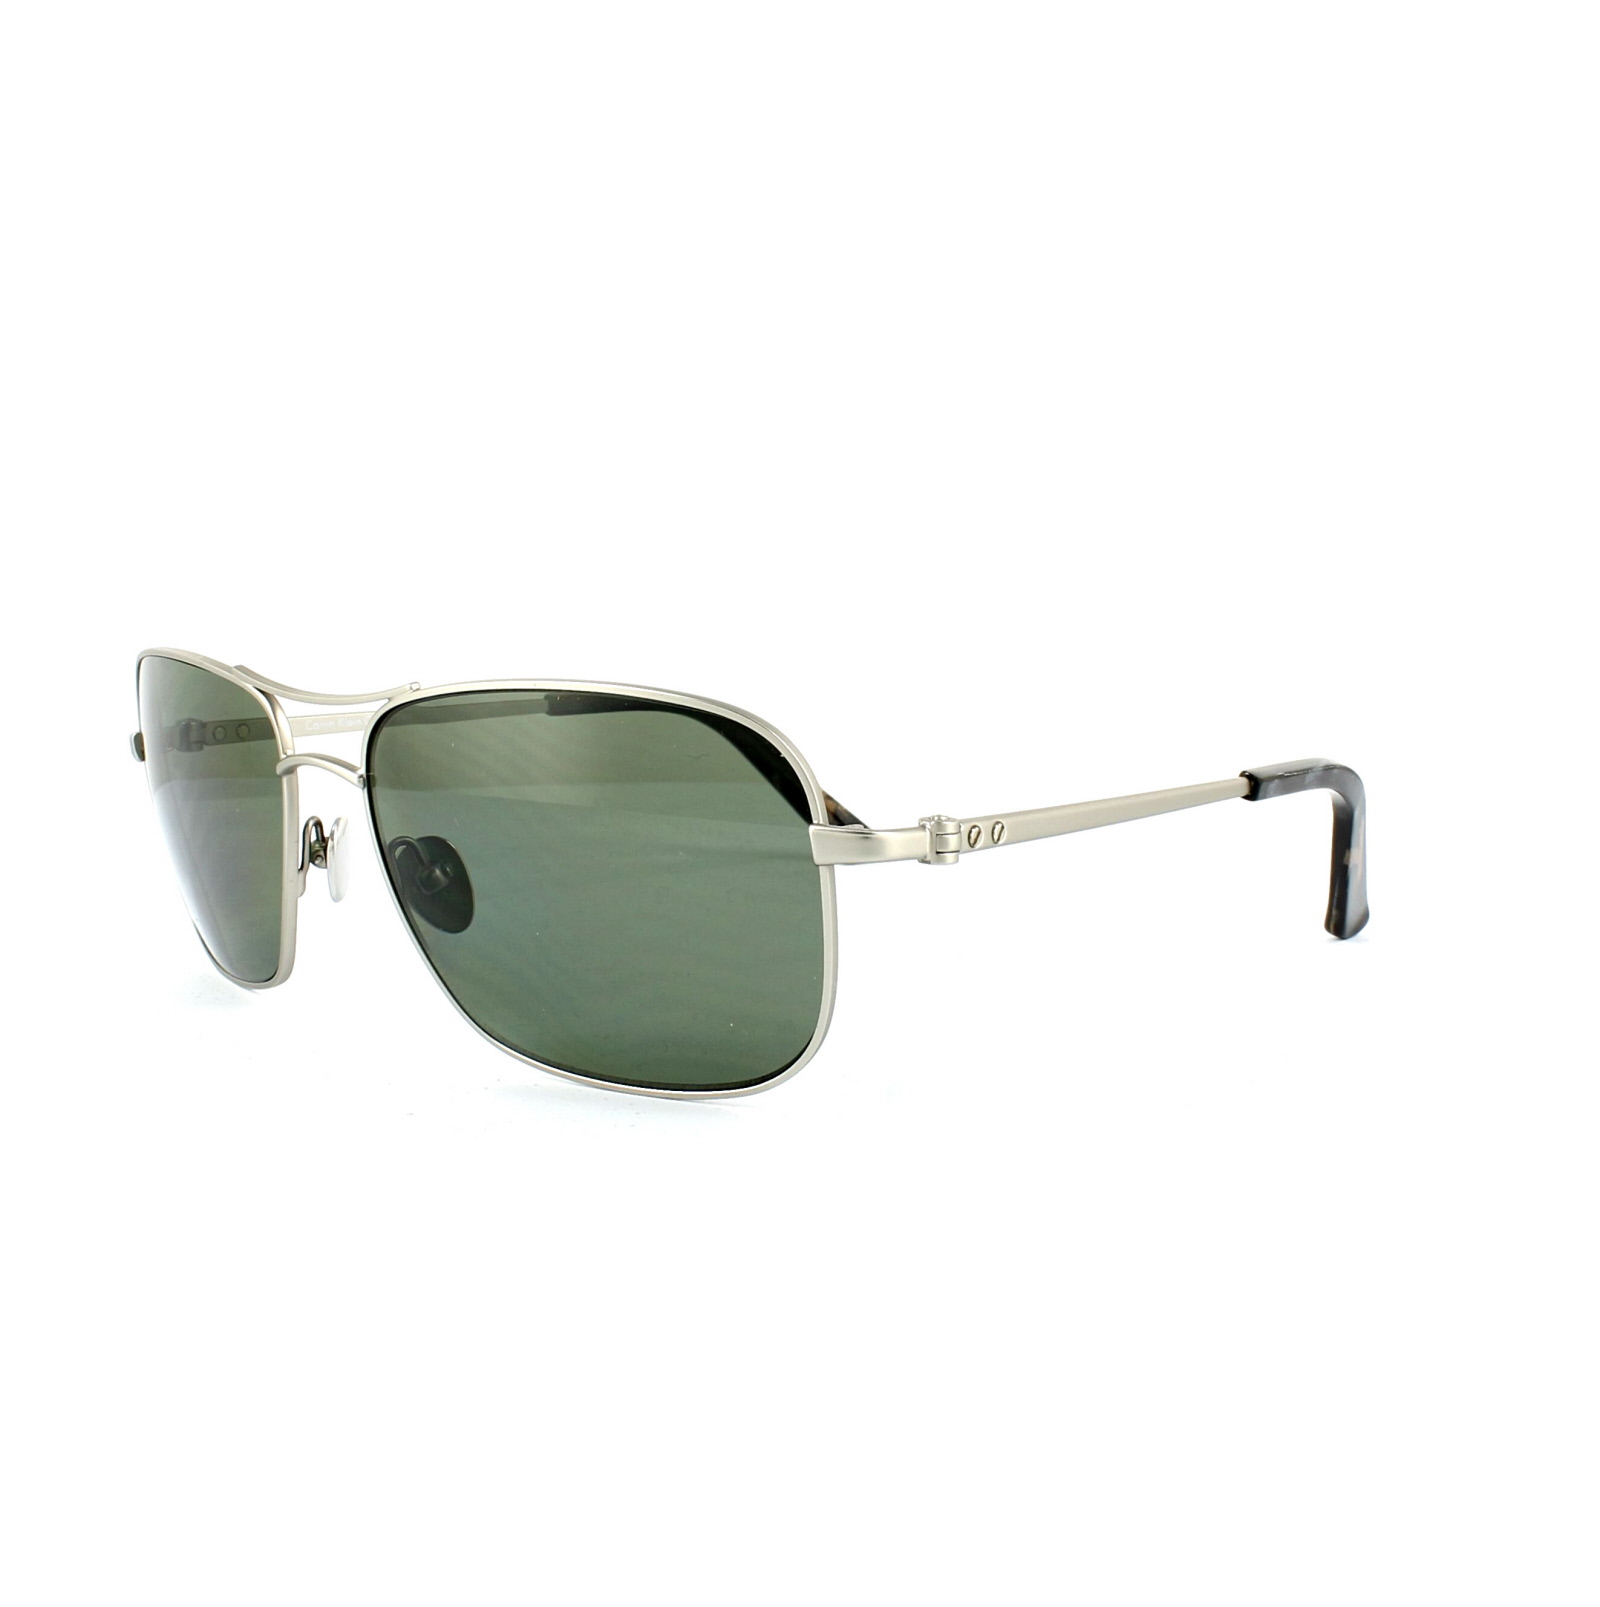 87a936f8d6 Sentinel Calvin Klein Sunglasses CK7497SP 045 Silver Grey Green Polarized